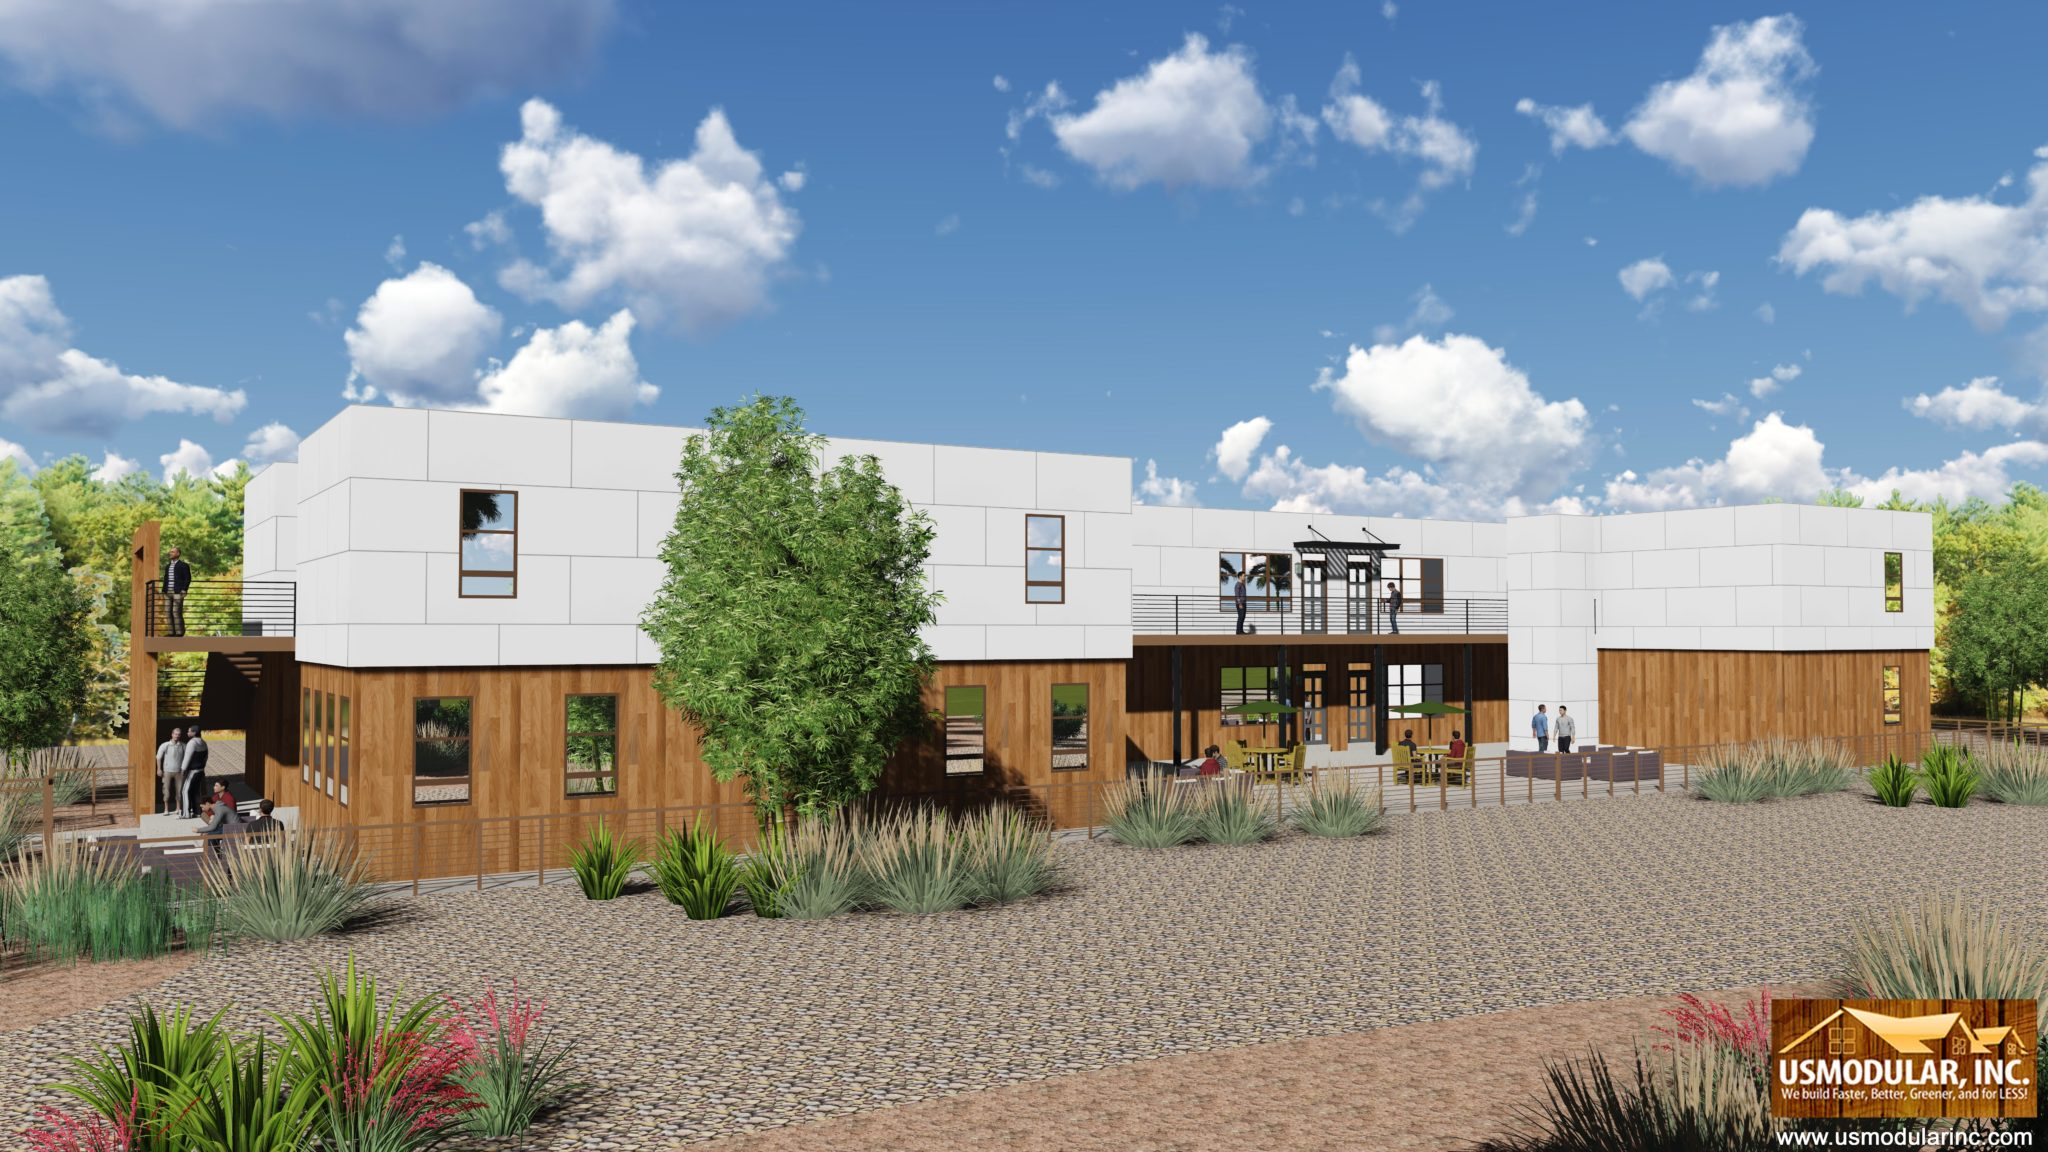 Modular construction creates affordable housing for for Affordable house construction